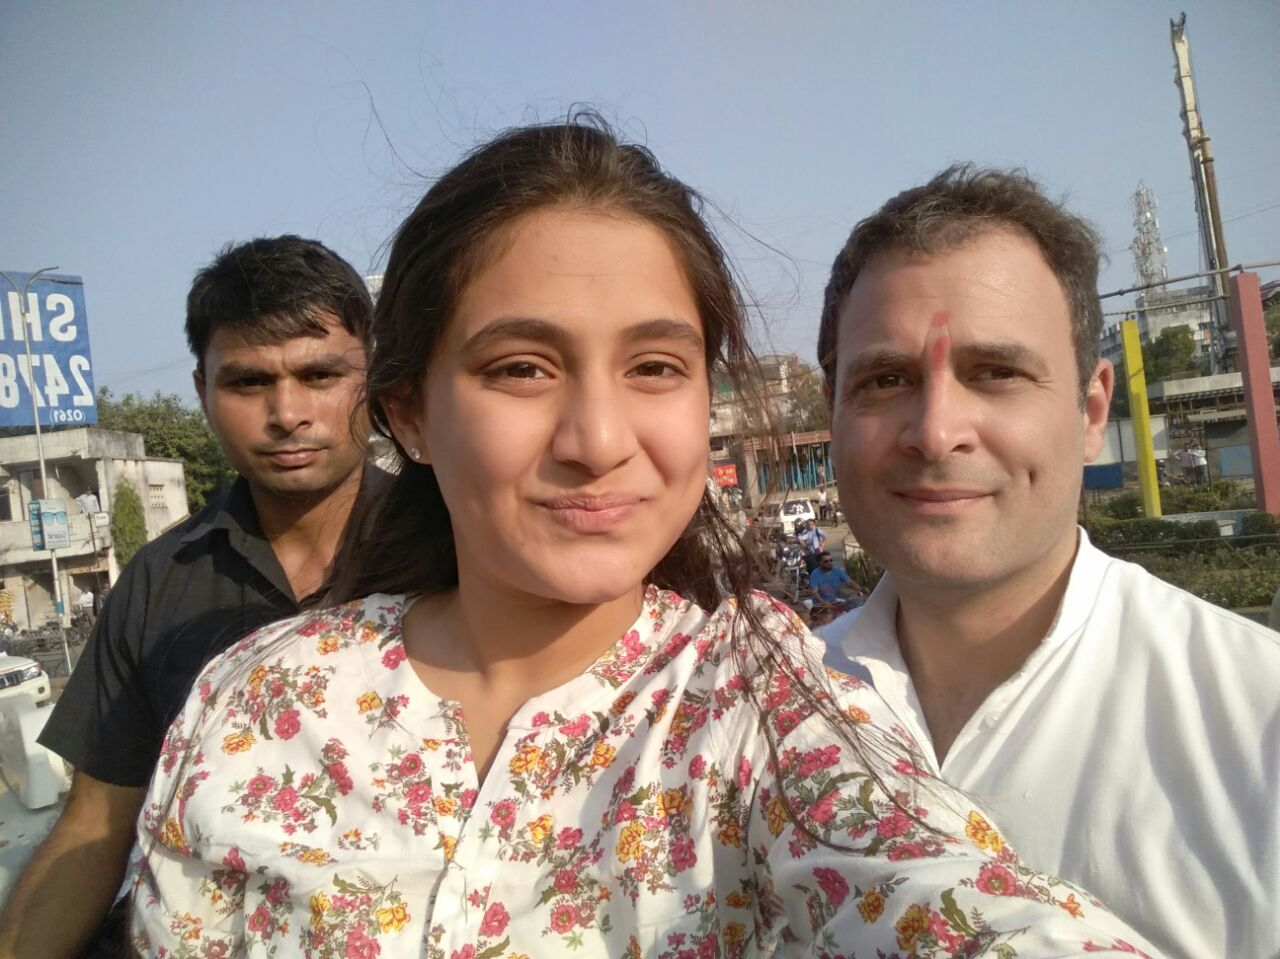 10th standard student clicks selfie with Rahul Gandhi after he gives flying kiss to her